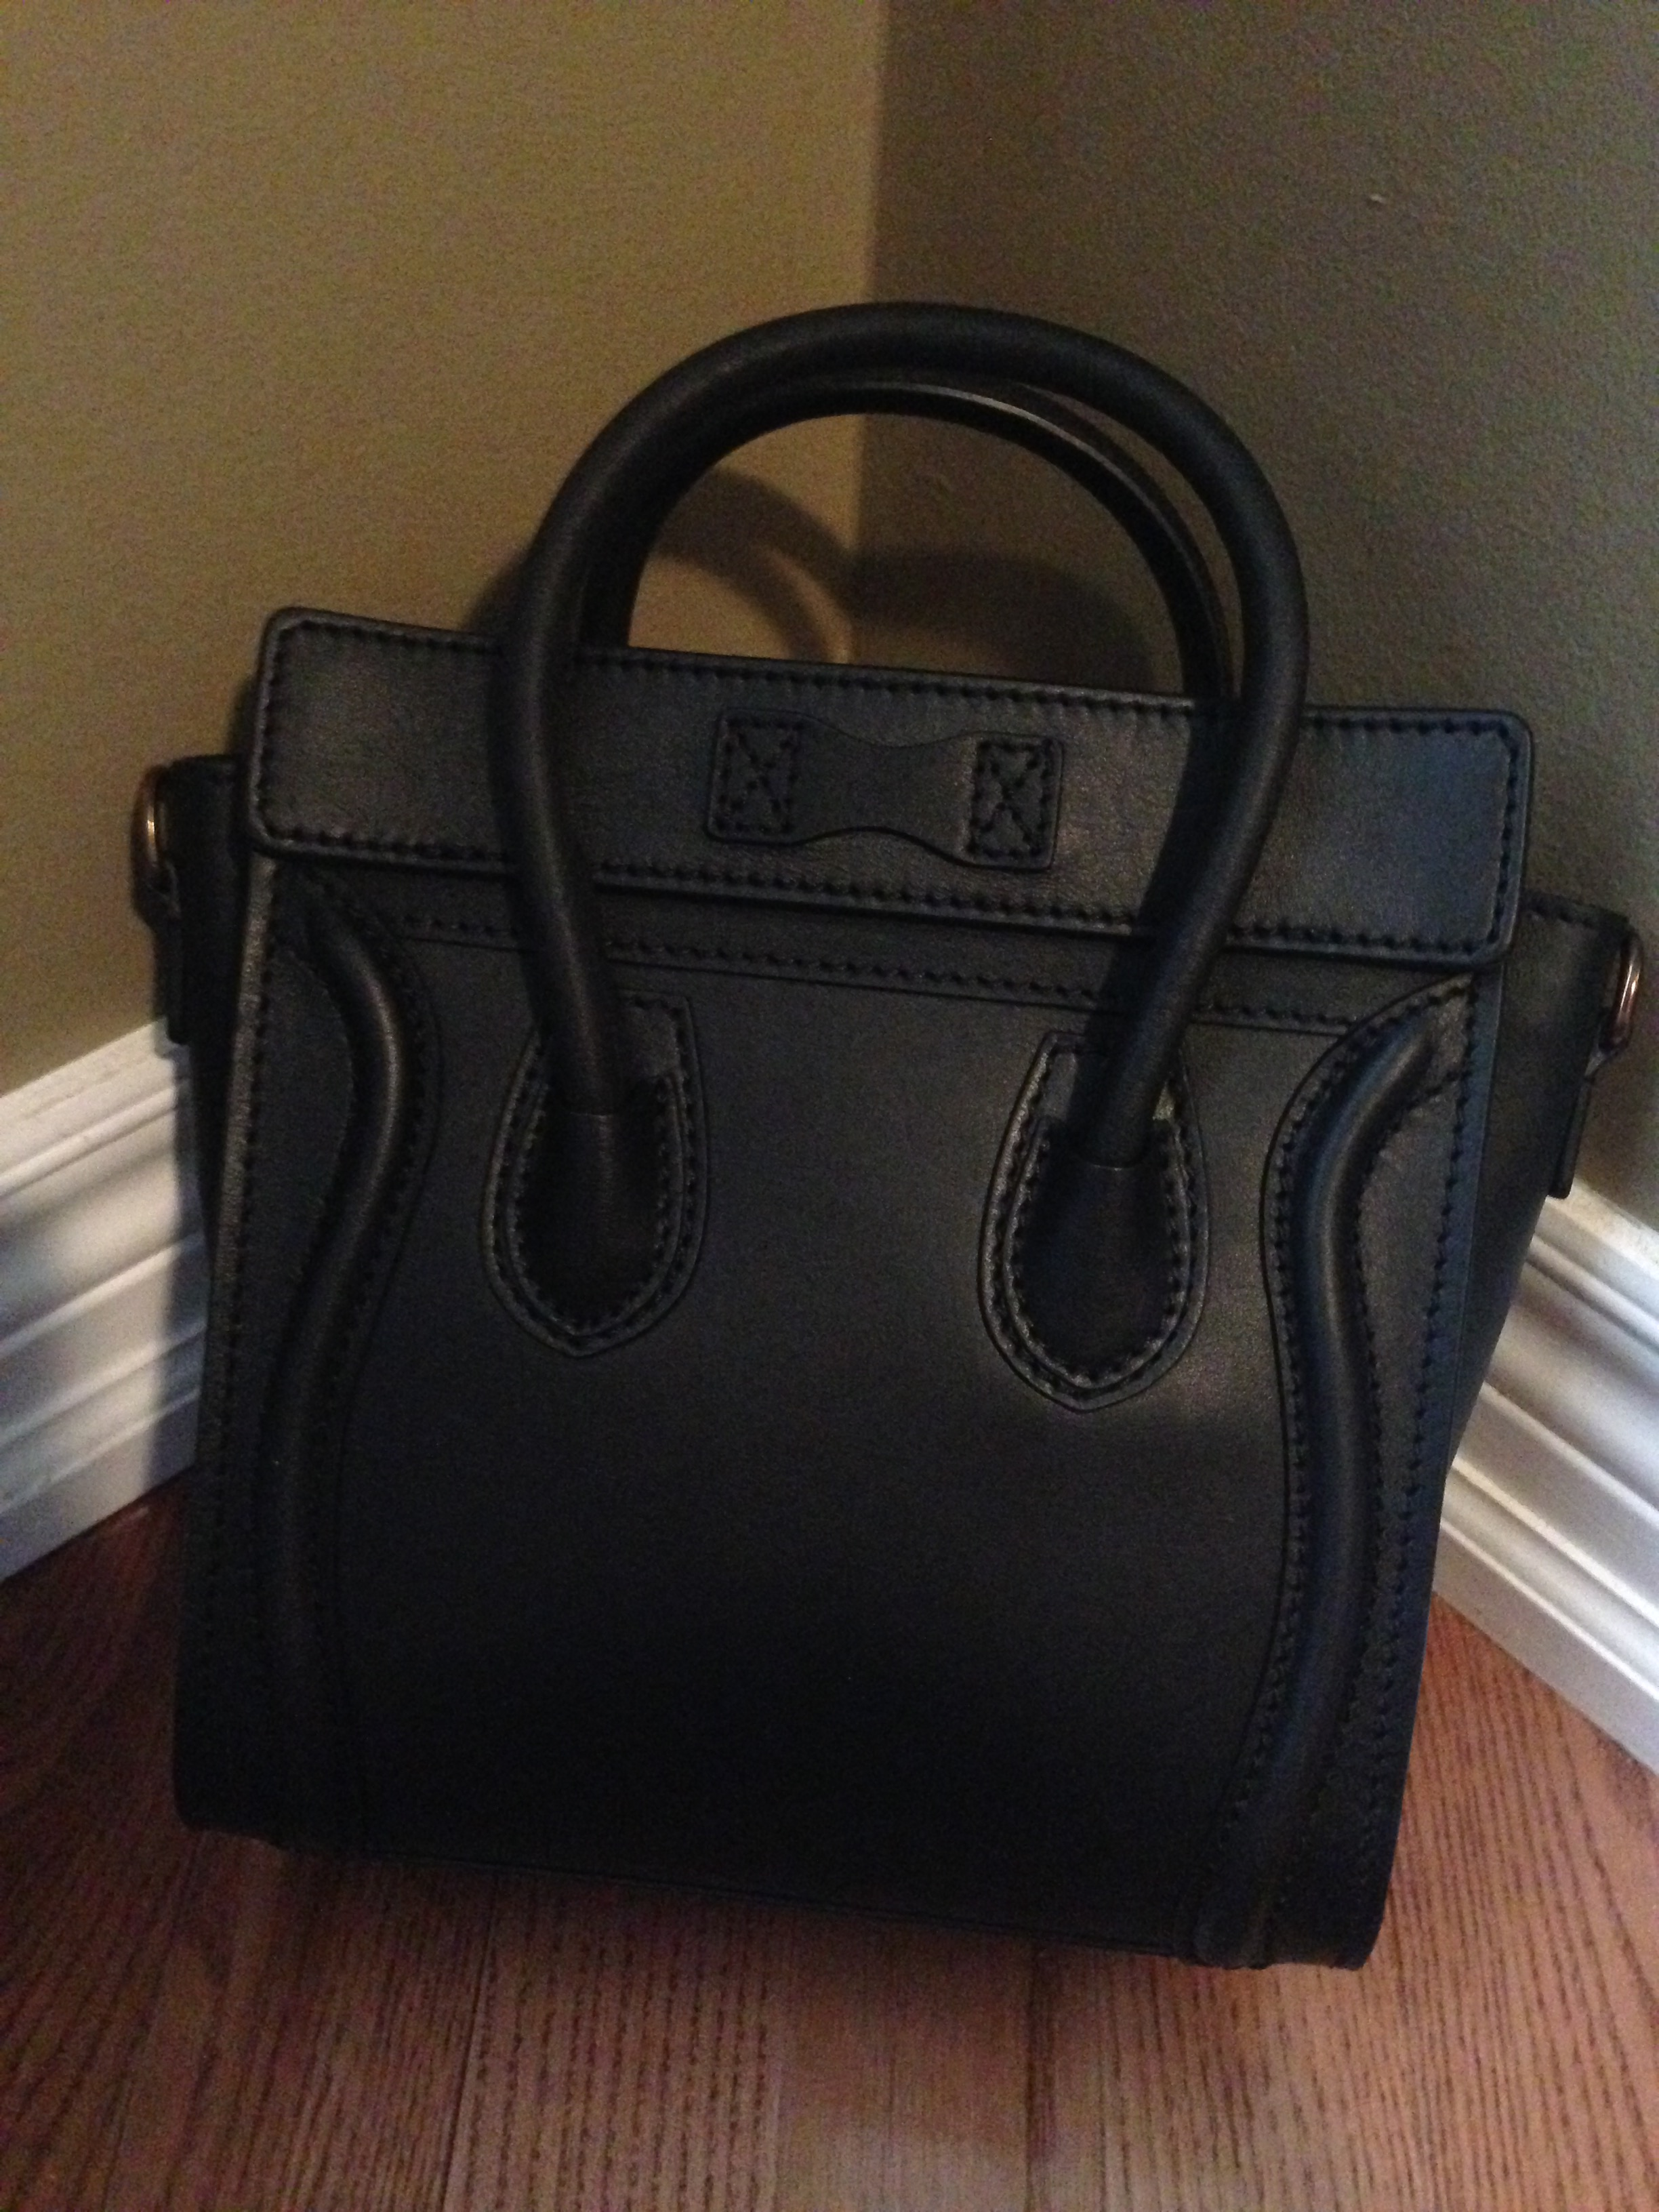 authentic celine luggage tote